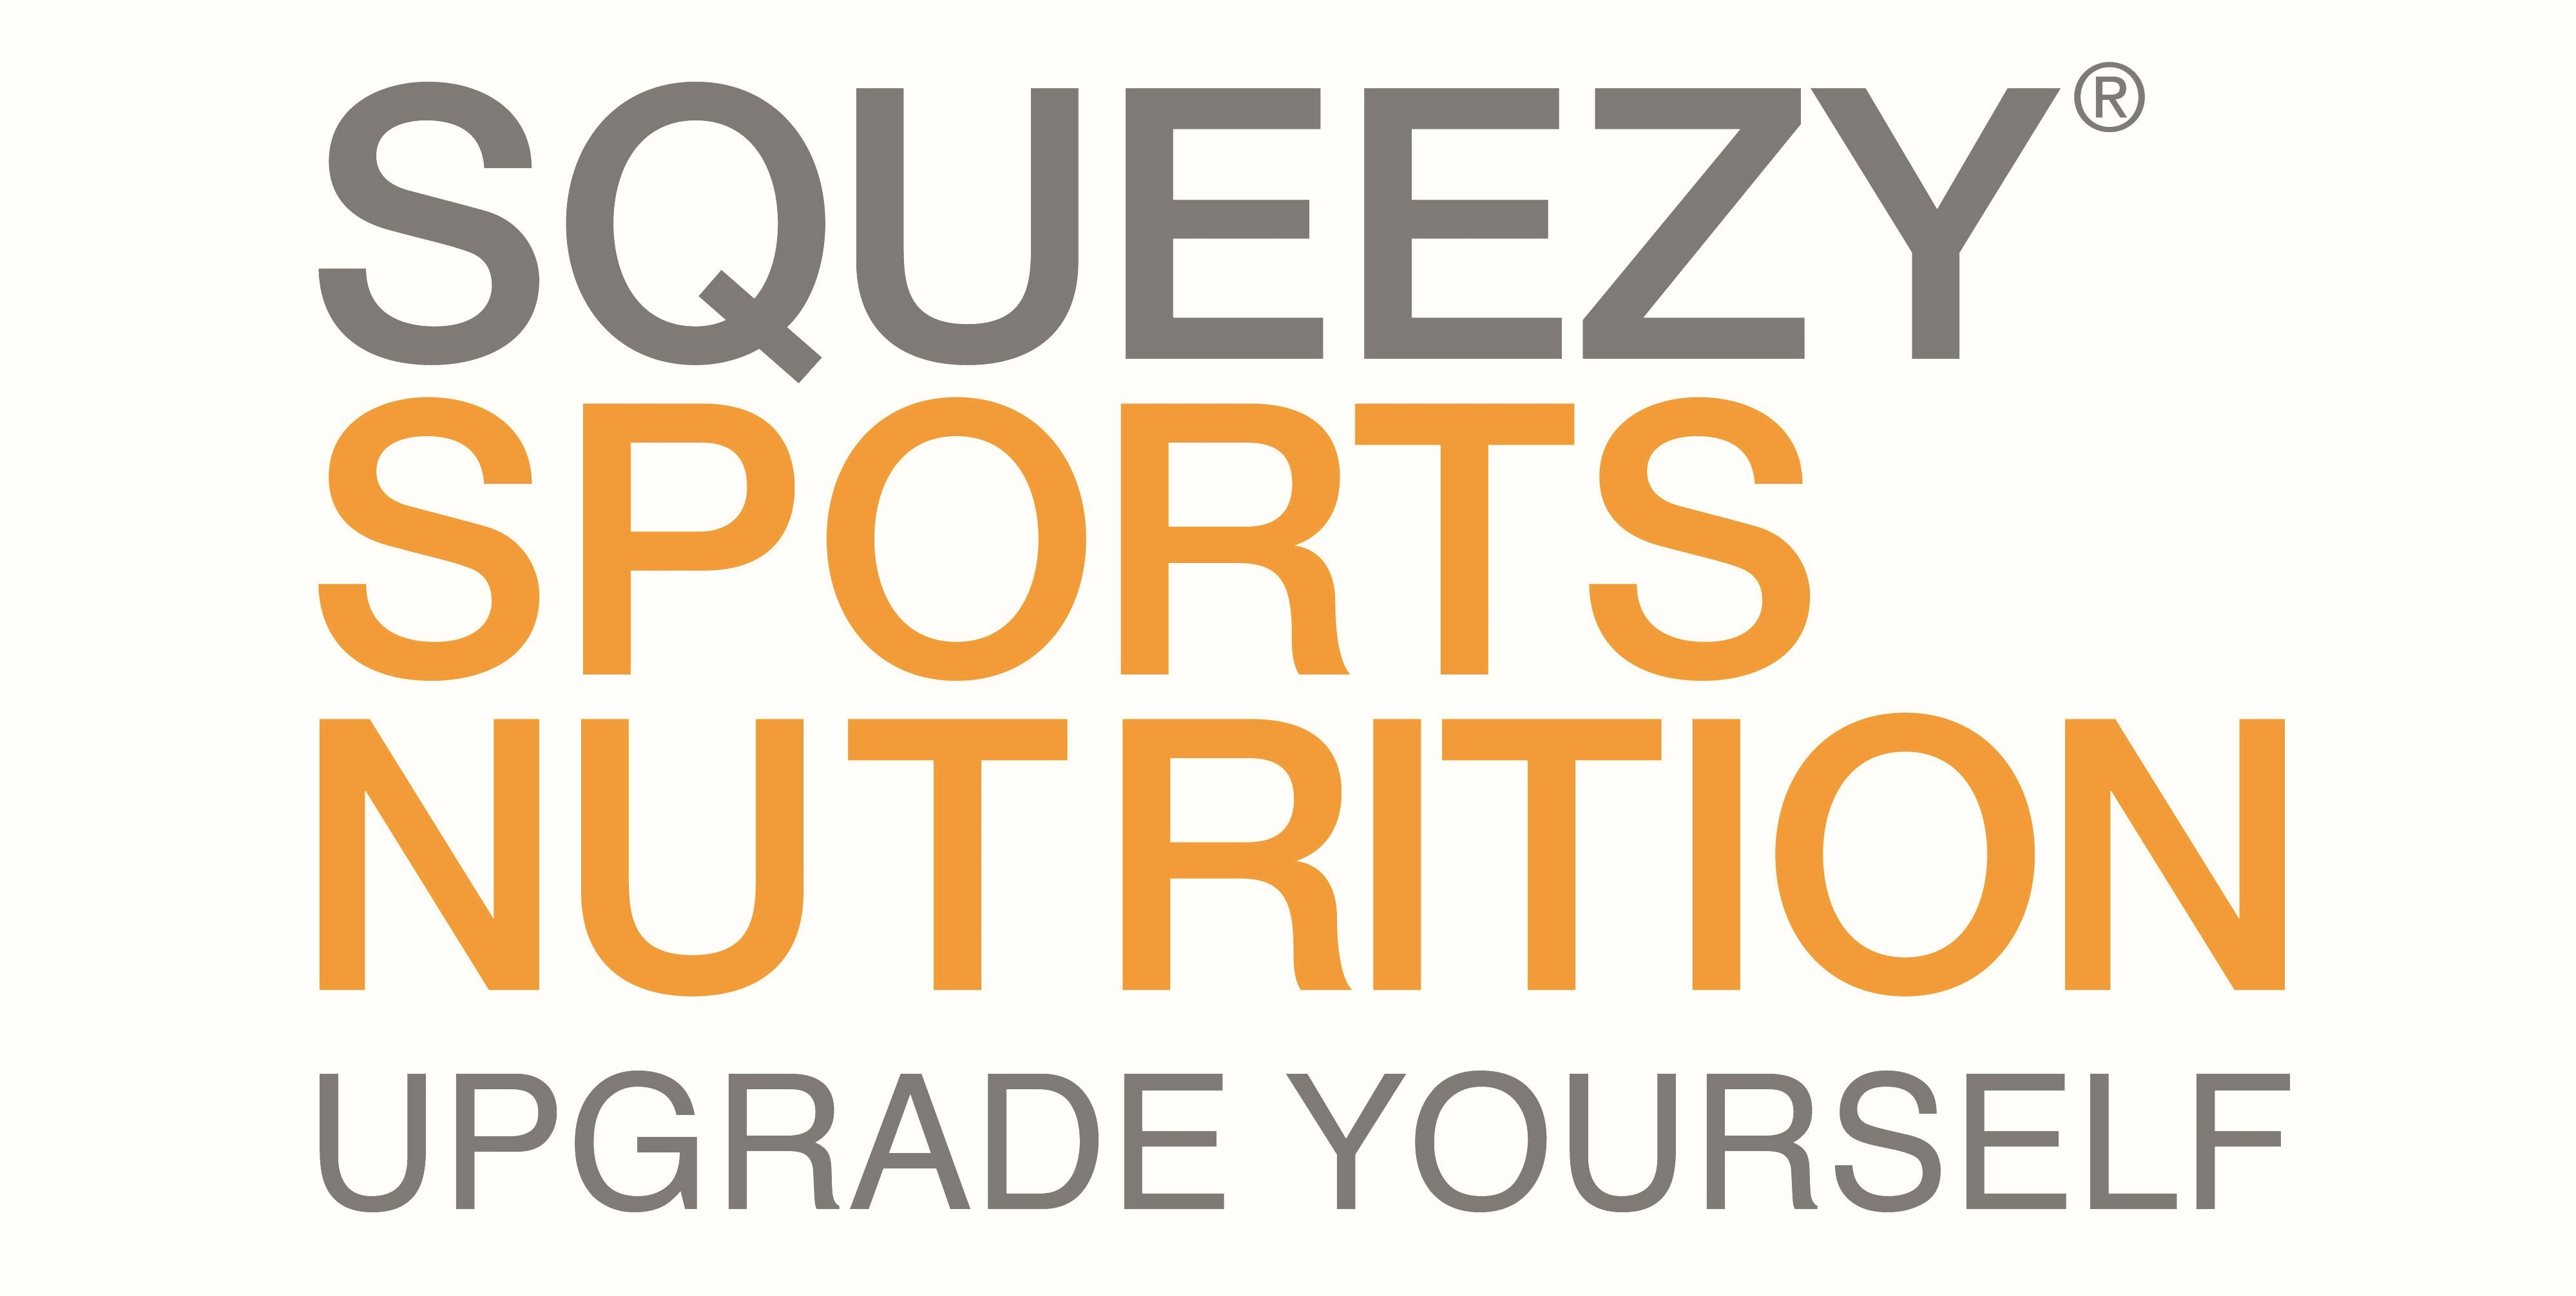 1. Squeezy Sports Nutrition GmbH